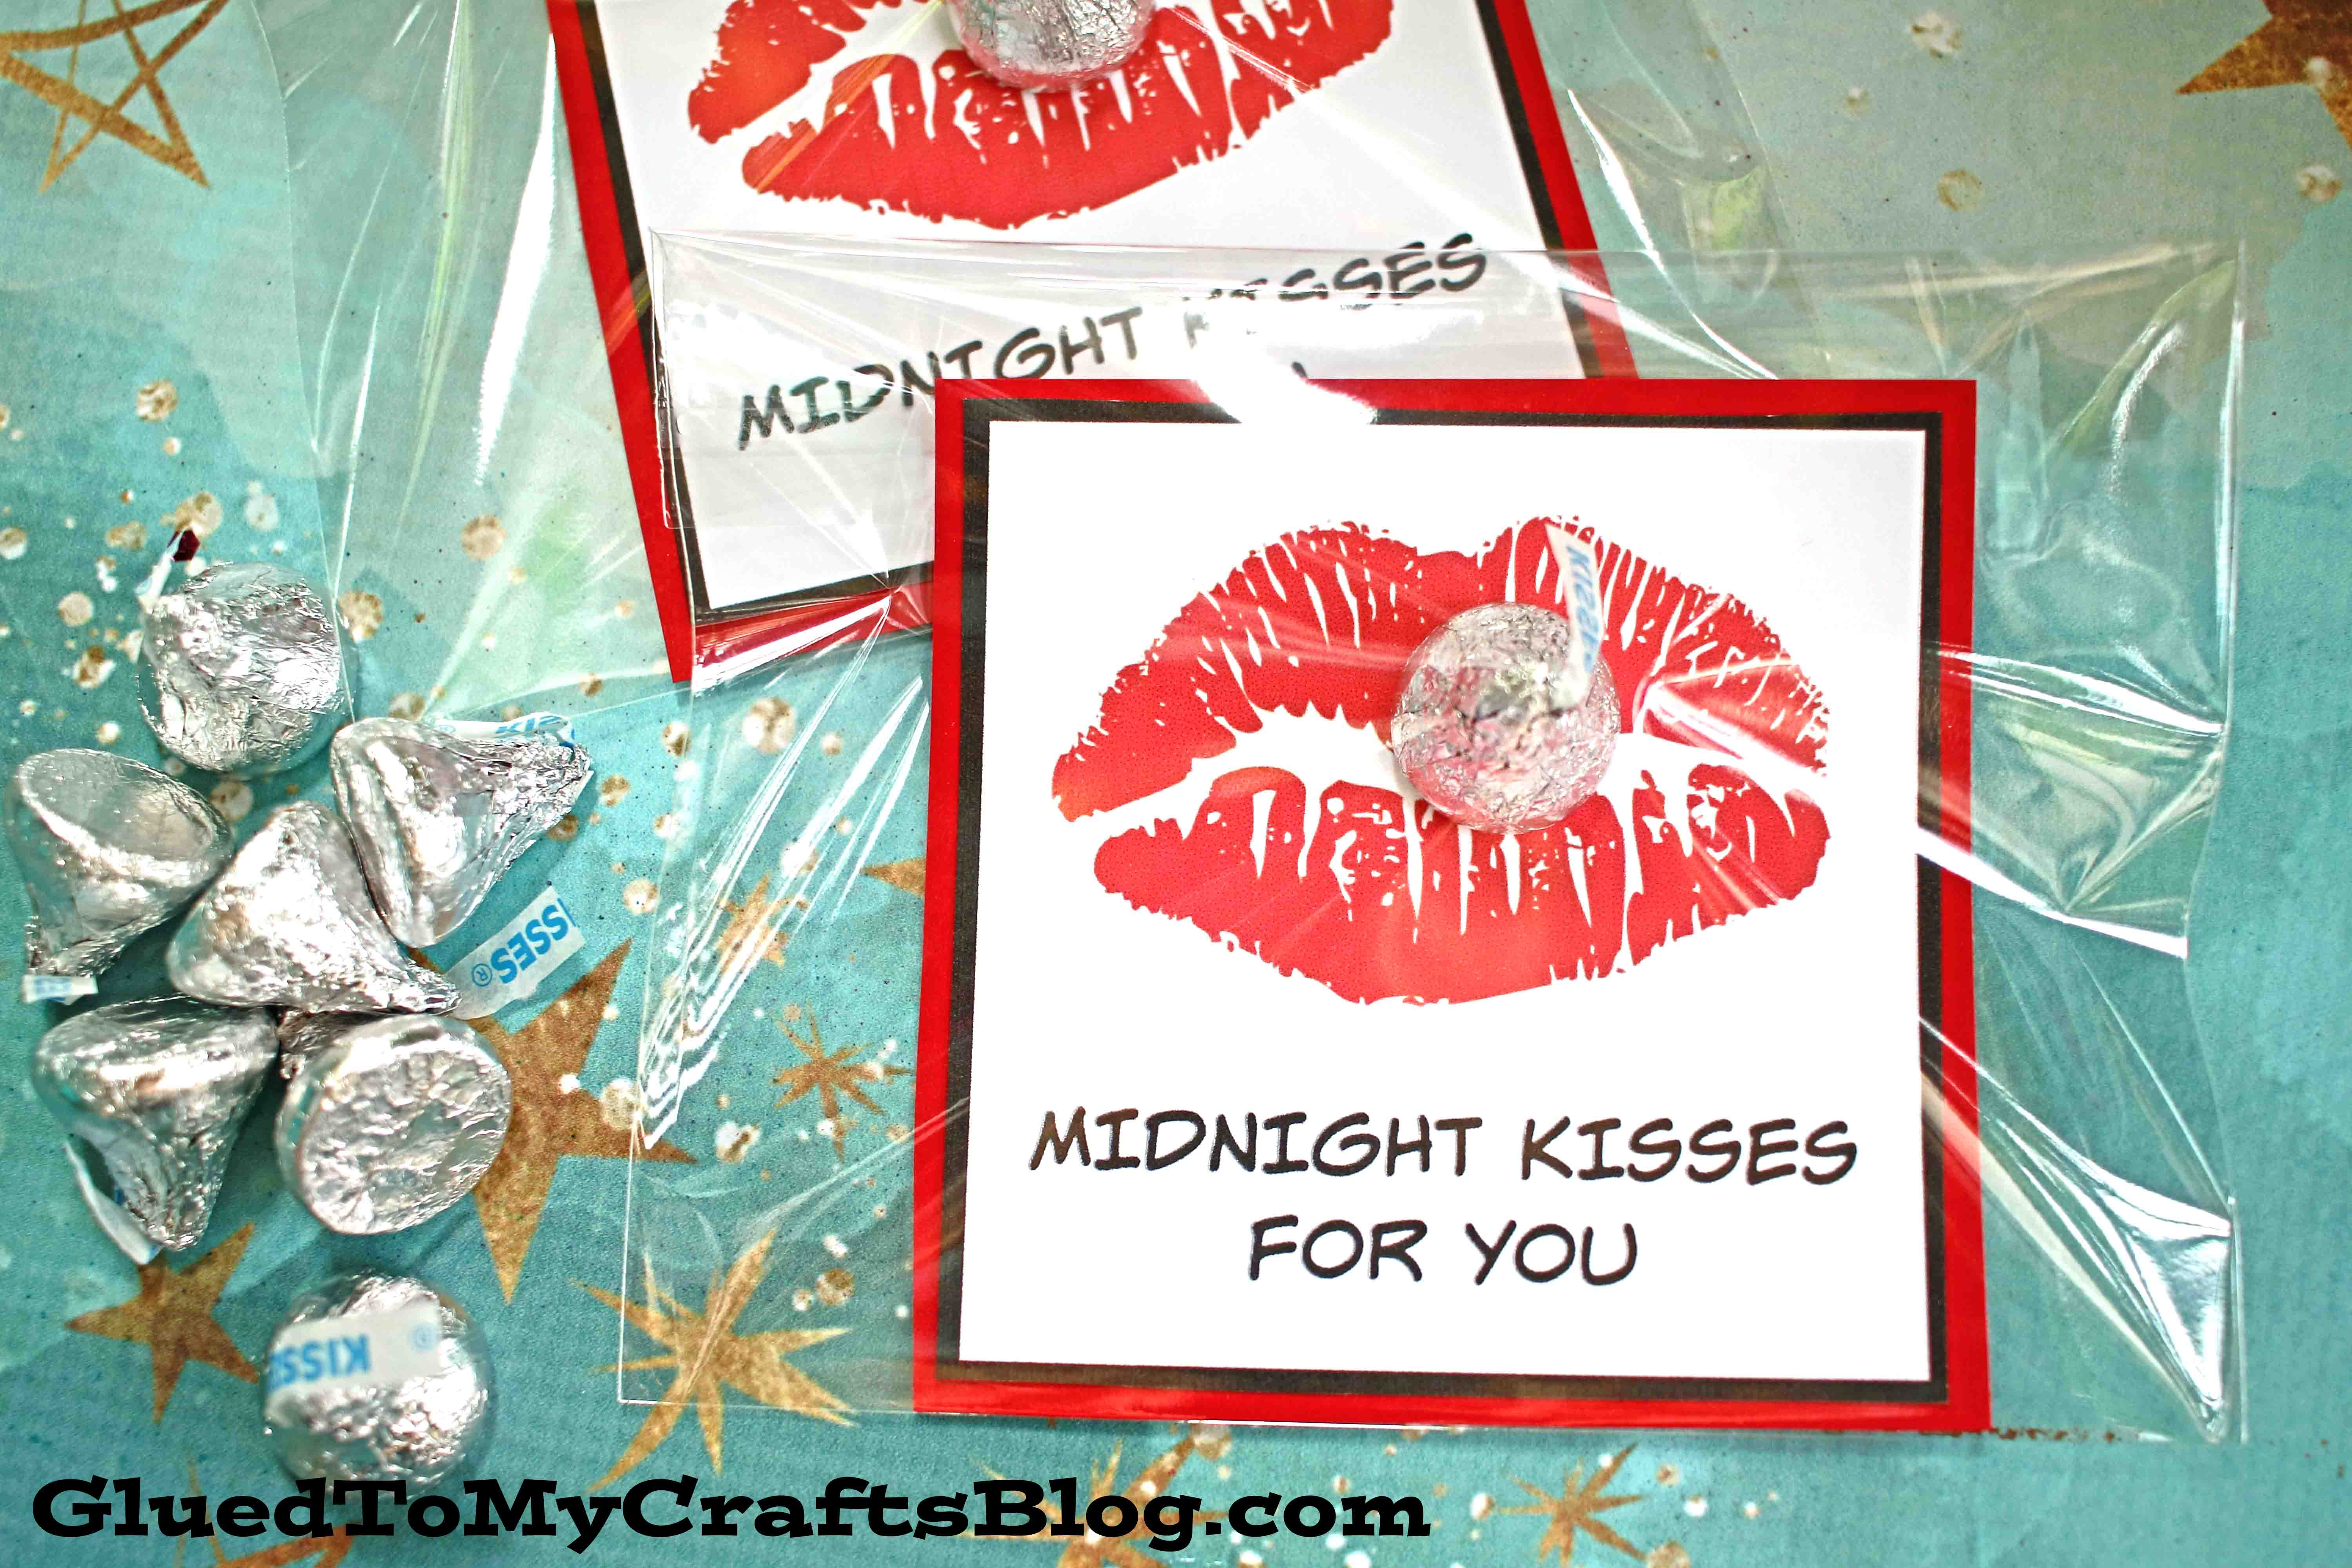 Midnight Kisses For You - Chocolate Party Favors For New Year's Eve